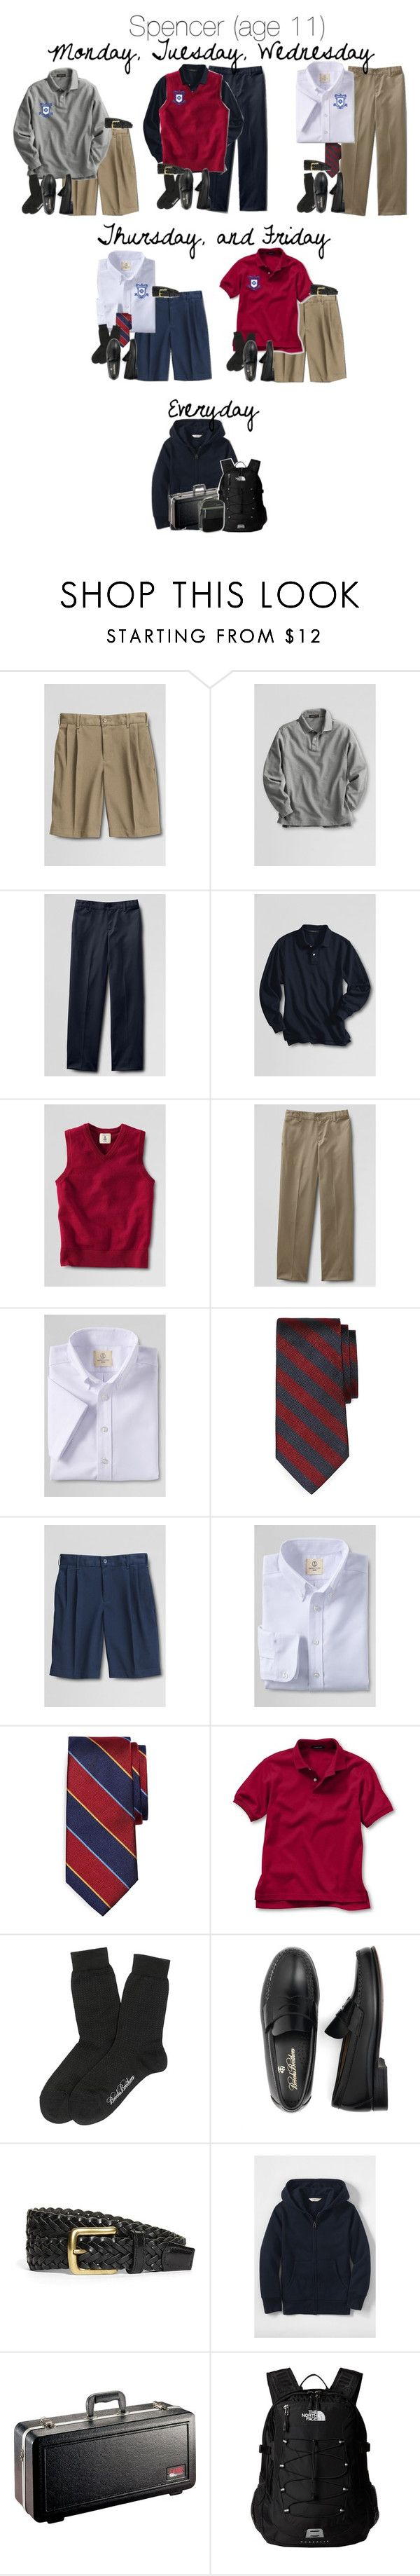 """A Week In April: Spencer for School"" by teamboby ❤ liked on Polyvore featuring Lands' End, Brooks Brothers, The North Face, men's fashion, menswear, uniform, boys and kids"